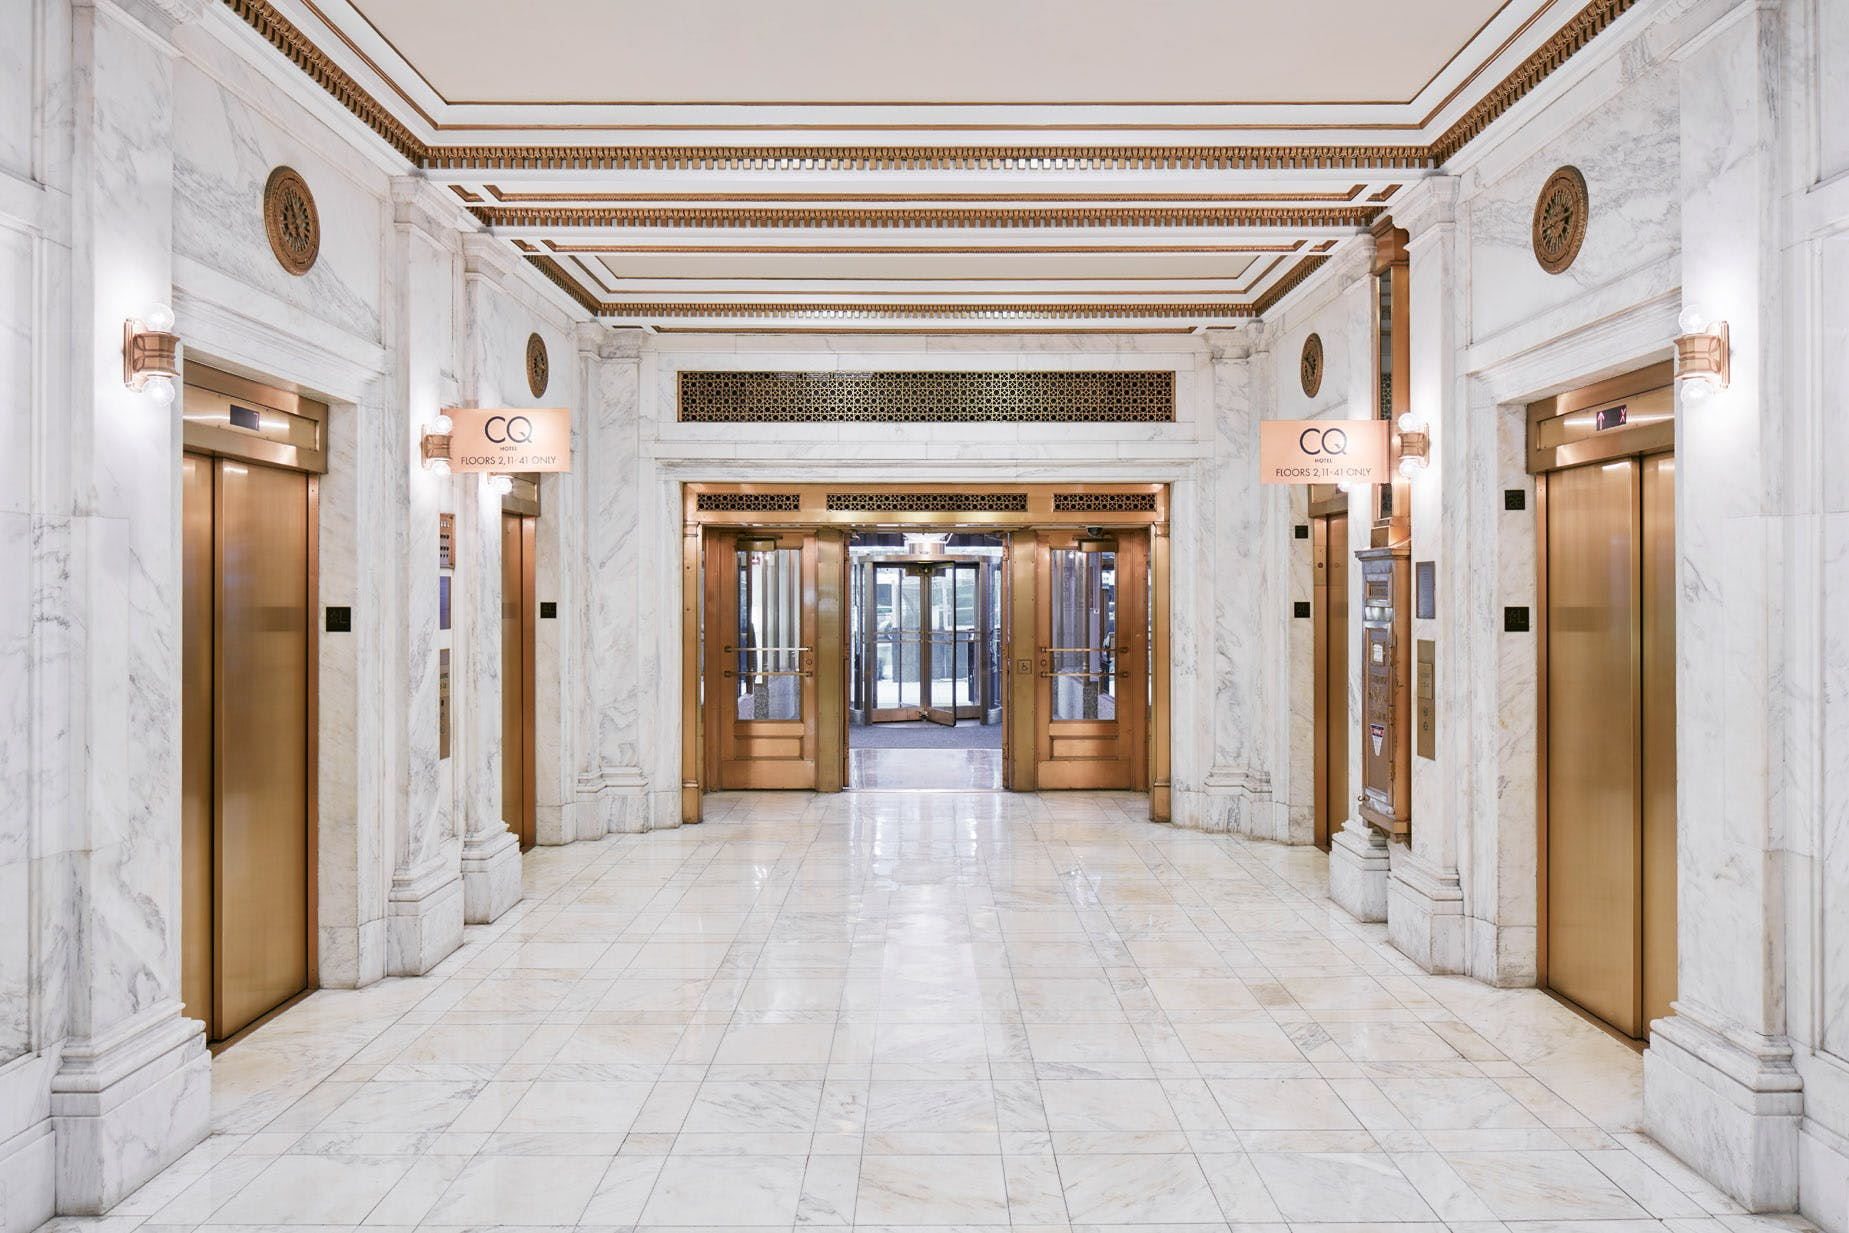 Marble lobby leading to the elevators at Club Quarters Hotel, Wacker at Michigan, Chicago